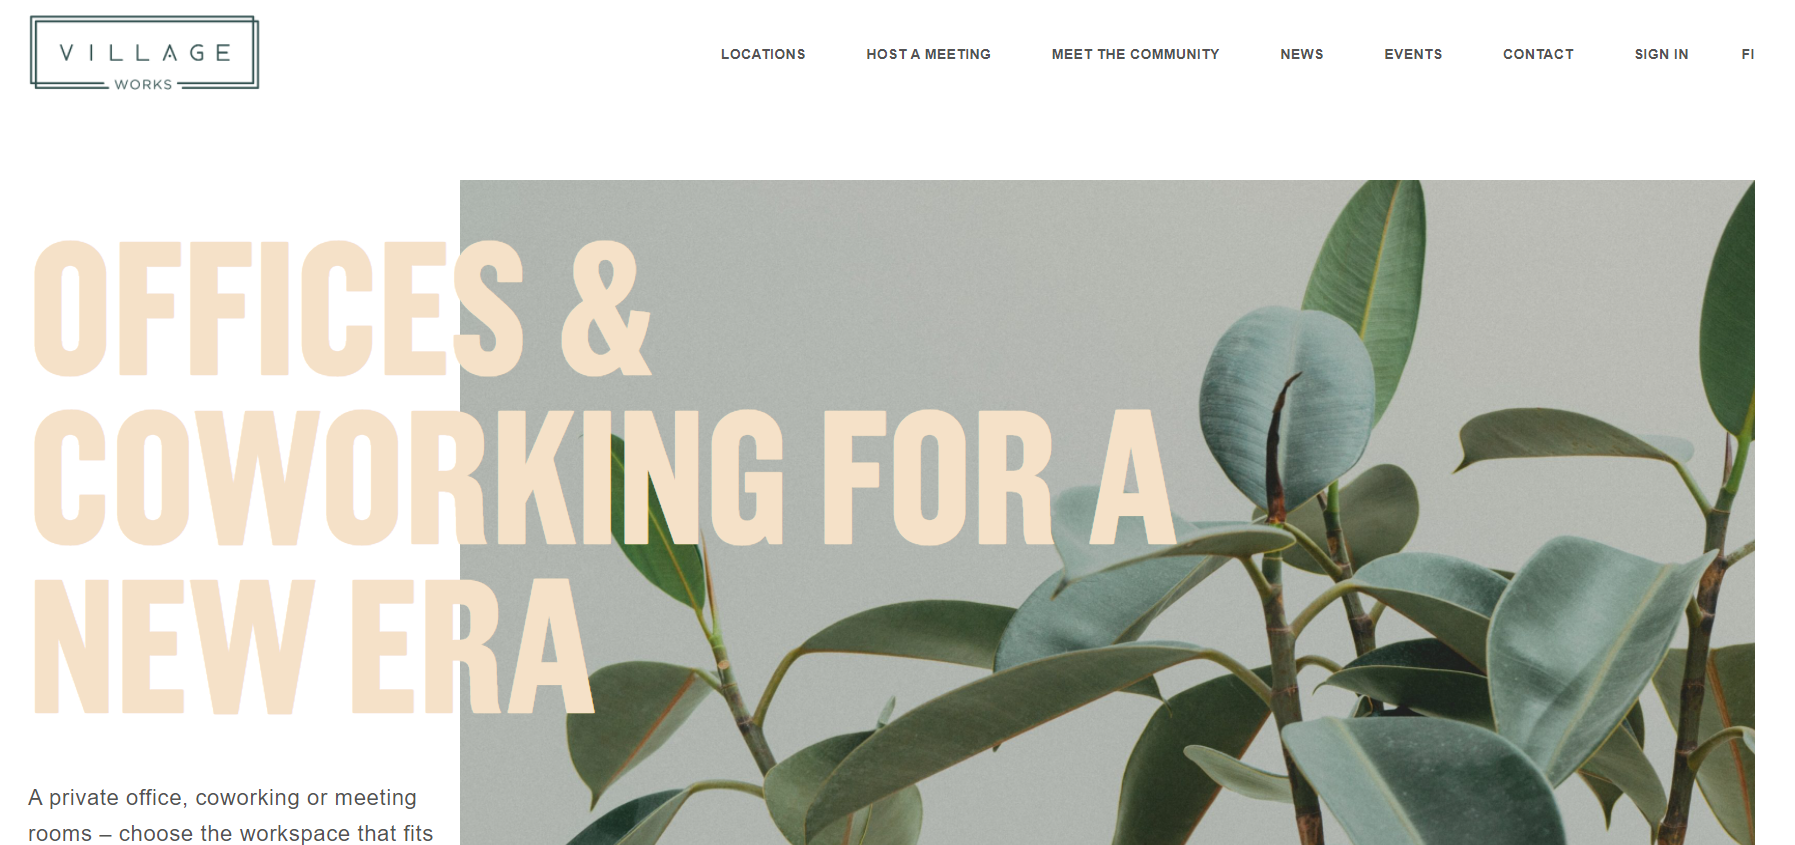 VillageWorks | Offices & Coworking in Finland